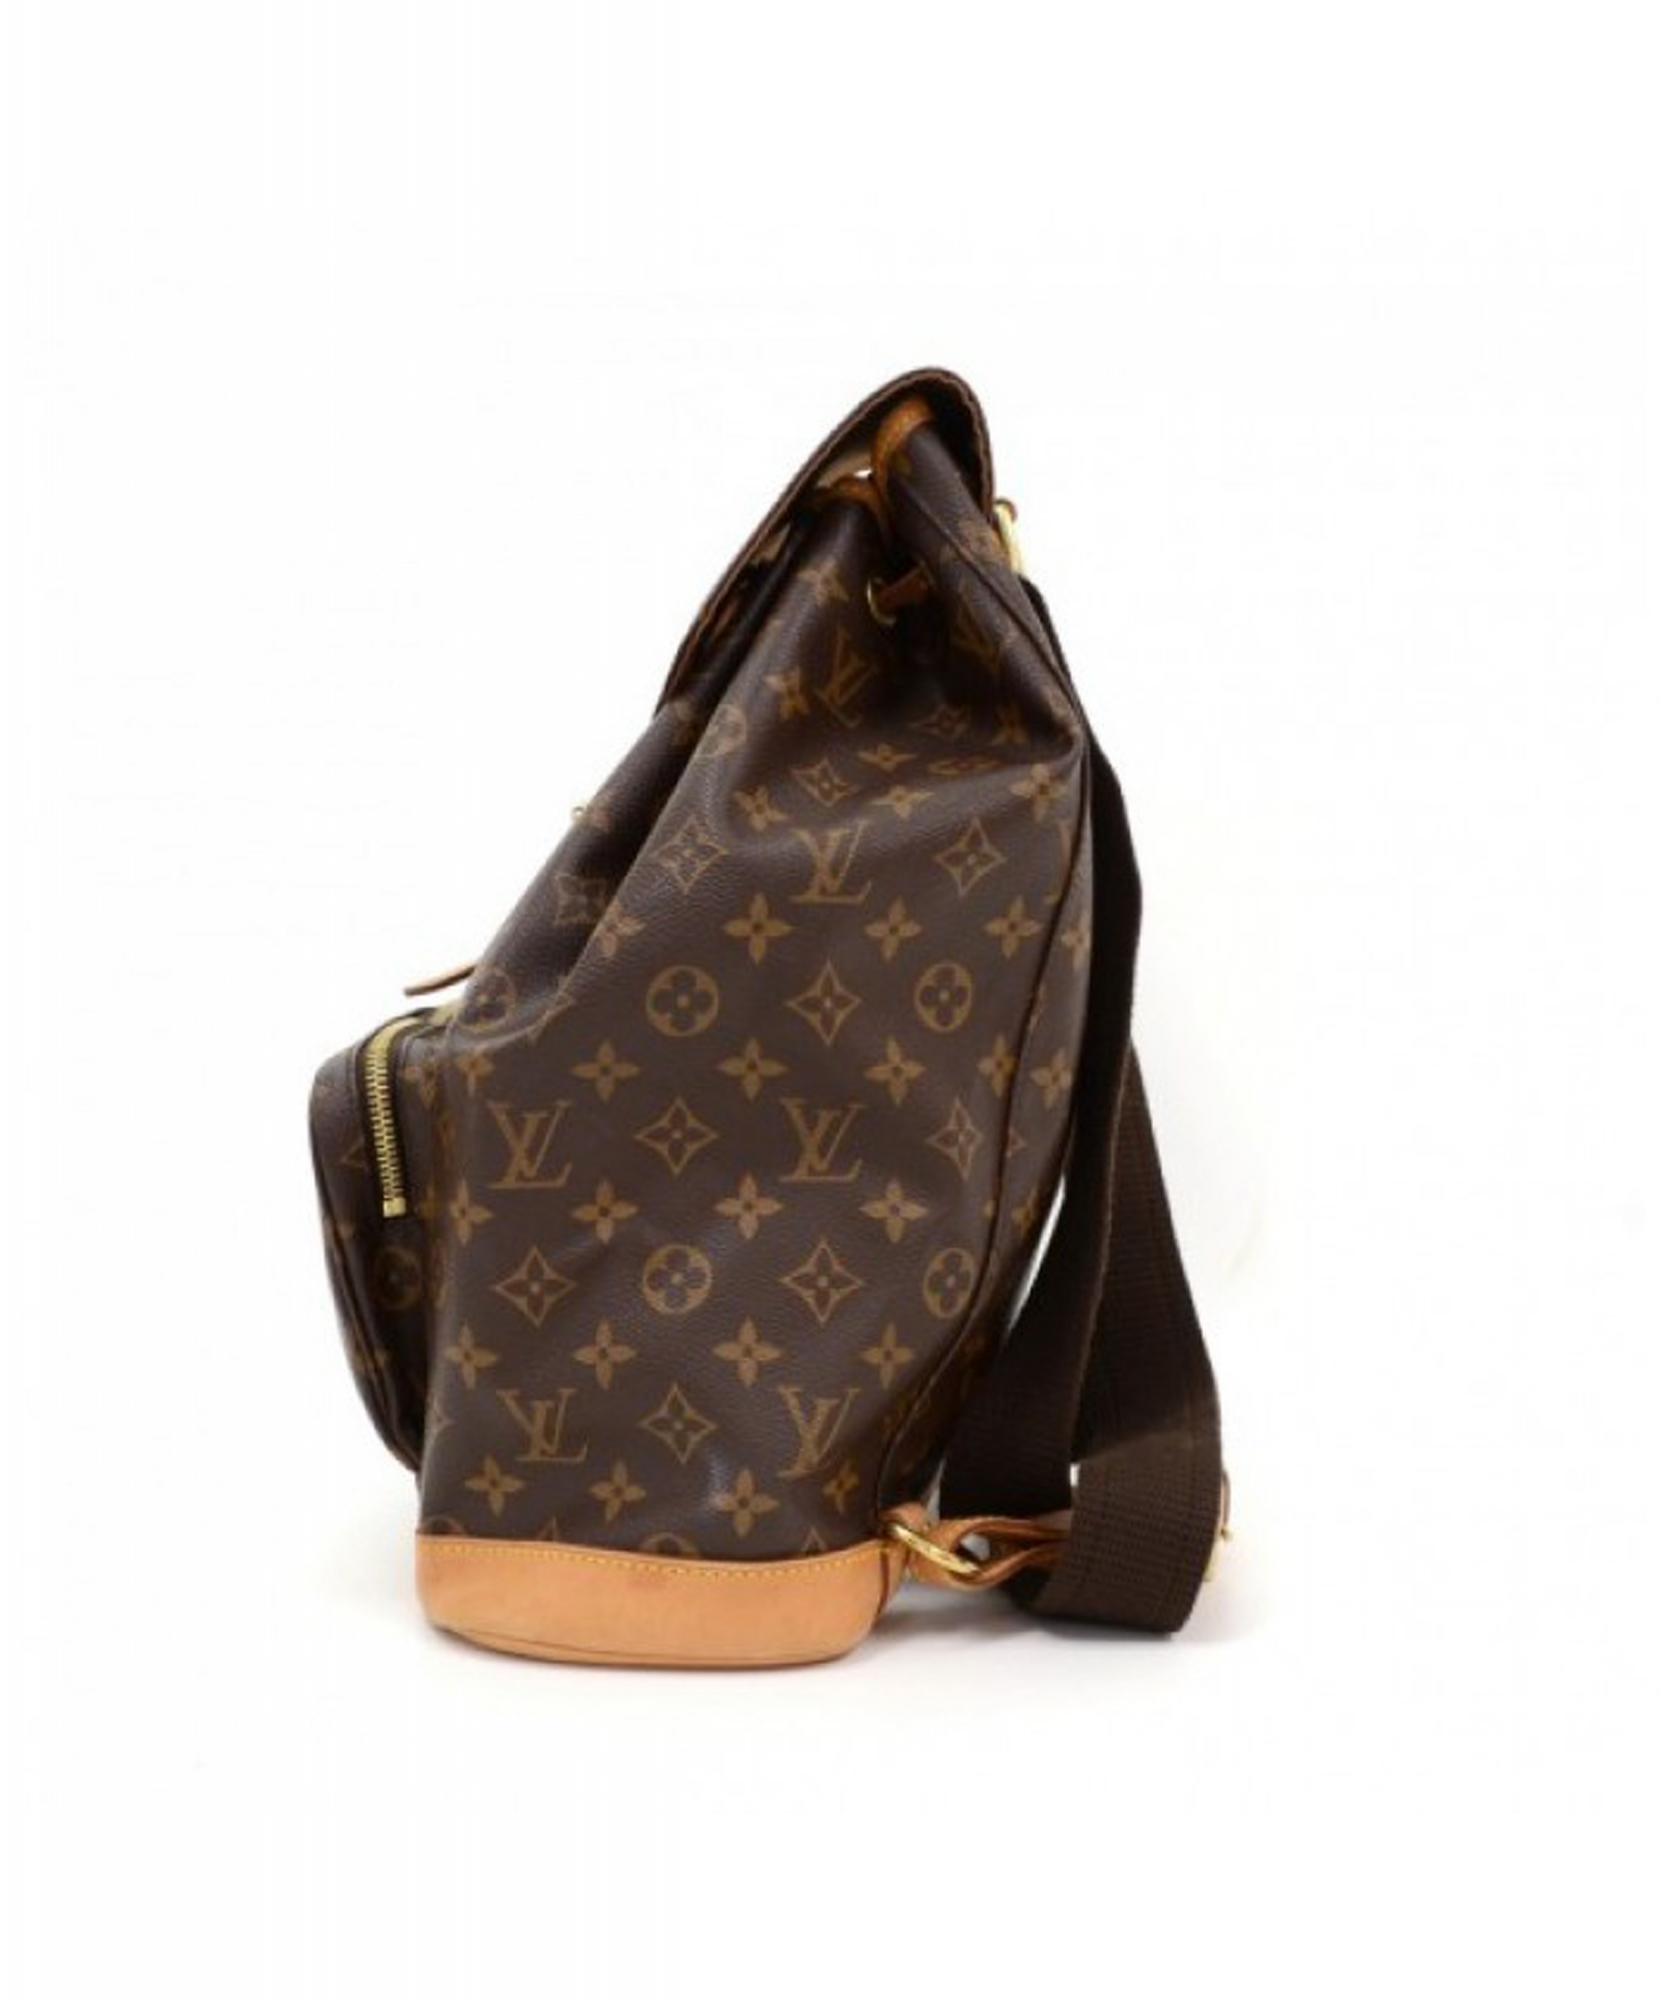 ec1300b66f03 ... Louis Vuitton  Montsouris  GM Monogram Canvas Backpack. Touch to zoom